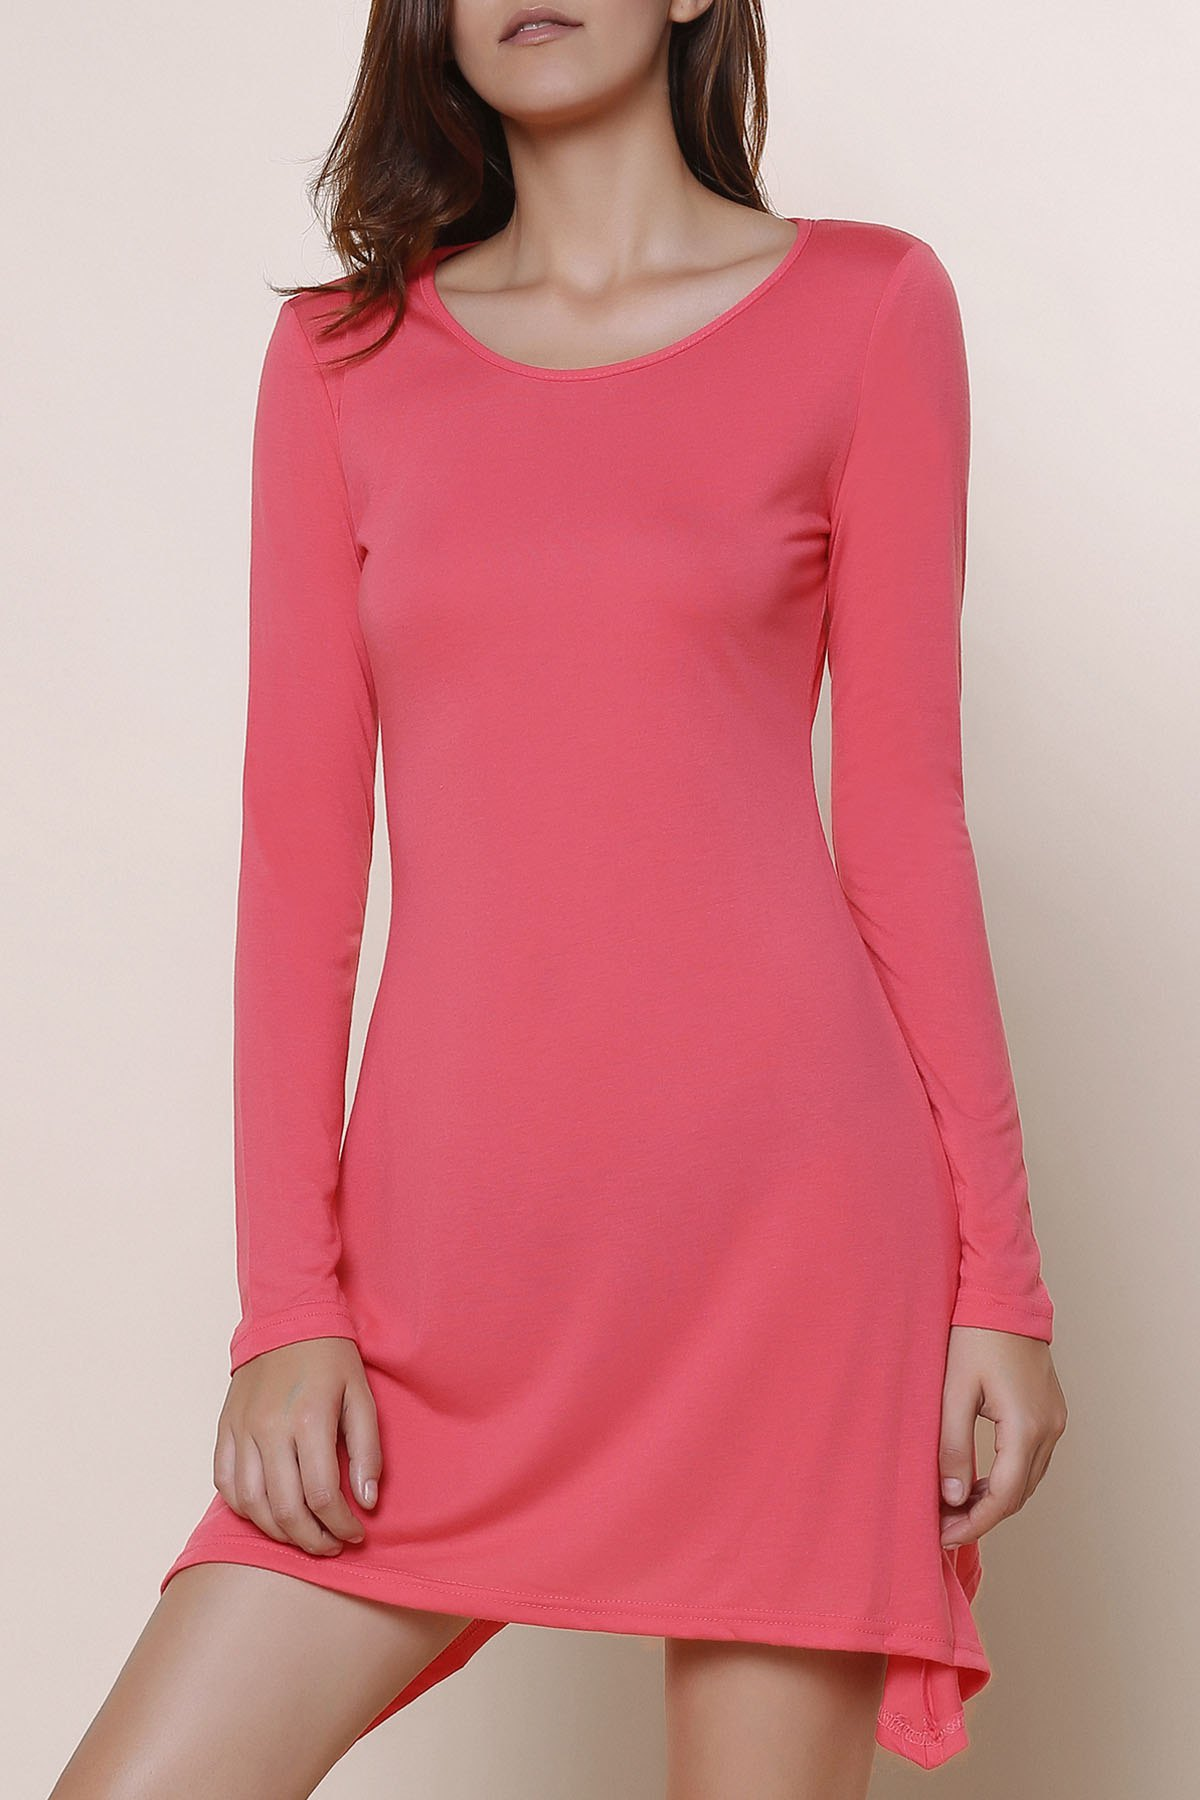 Hot Stylish Scoop Neck Long Sleeve Asymmetrical Solid Color Women's Dress